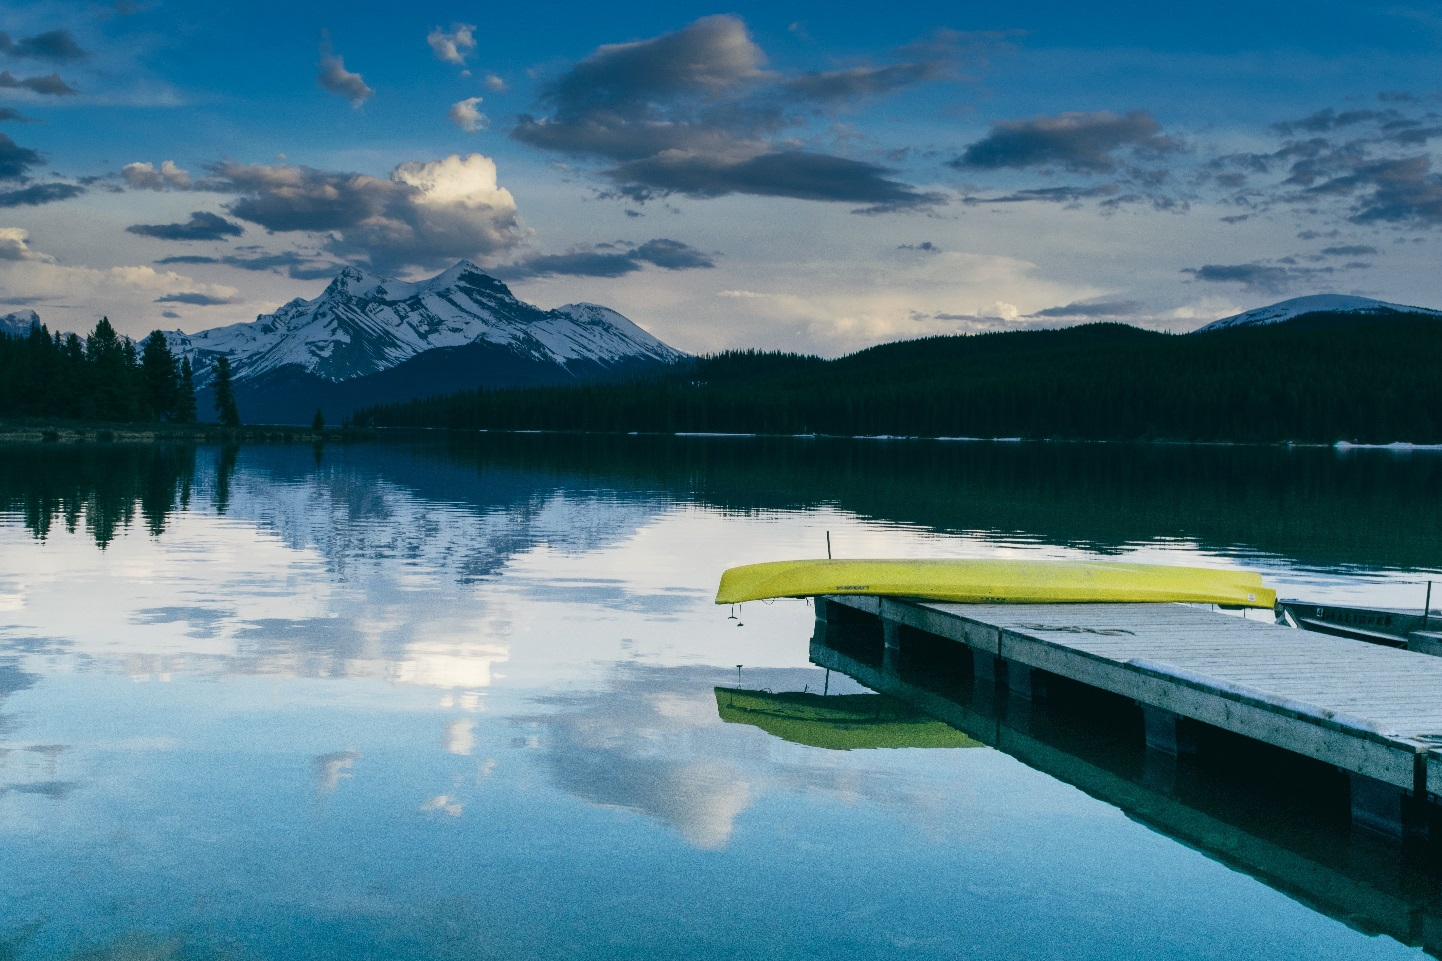 Scenic view of mountains and lake with canoe on dock